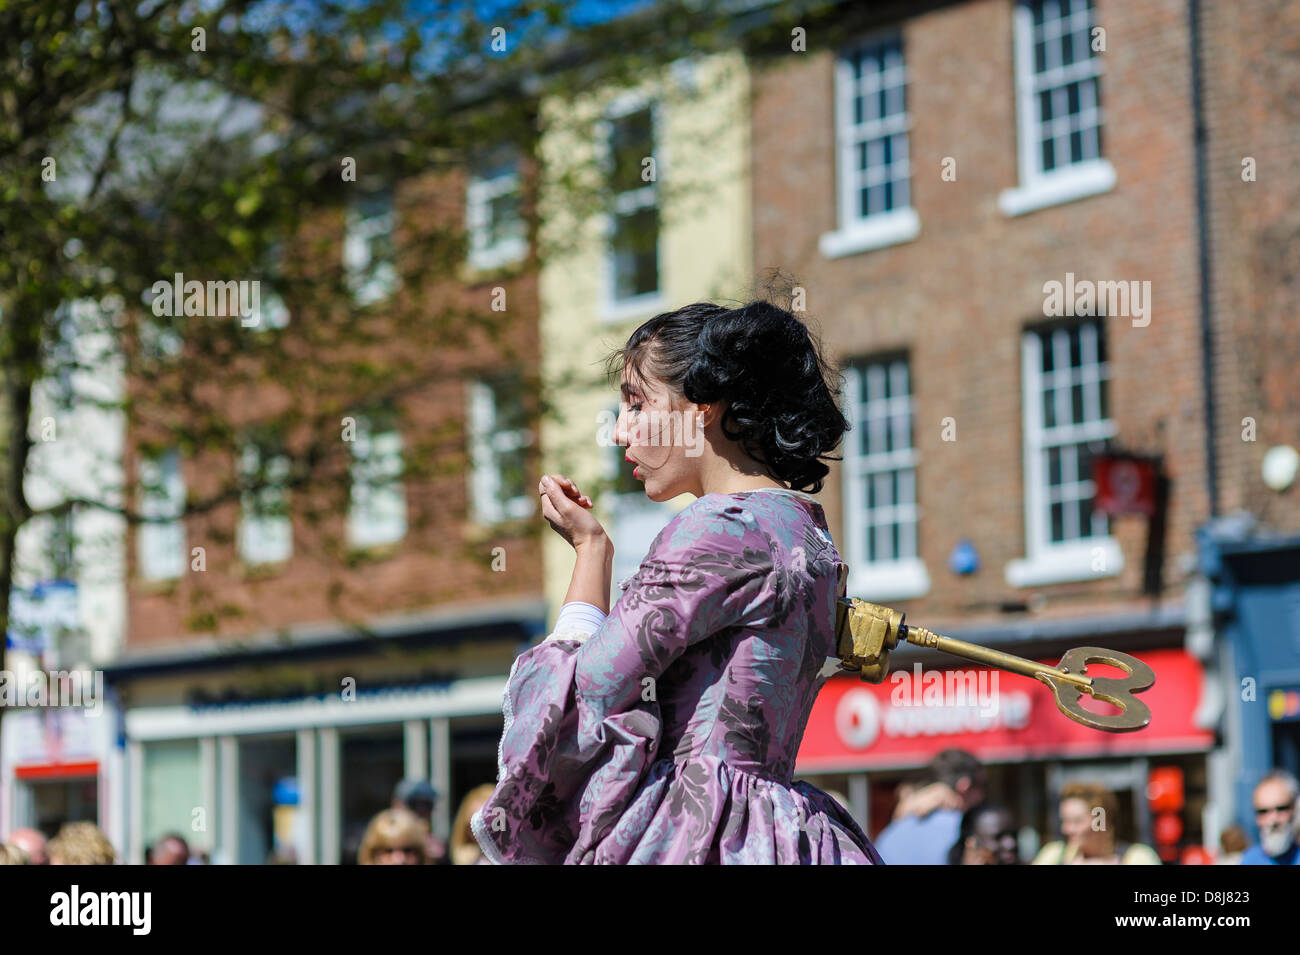 Canadian mime Kate Mior hams it up at the 2013 York Buskival. A street performance on Parliament Street, York - Stock Image